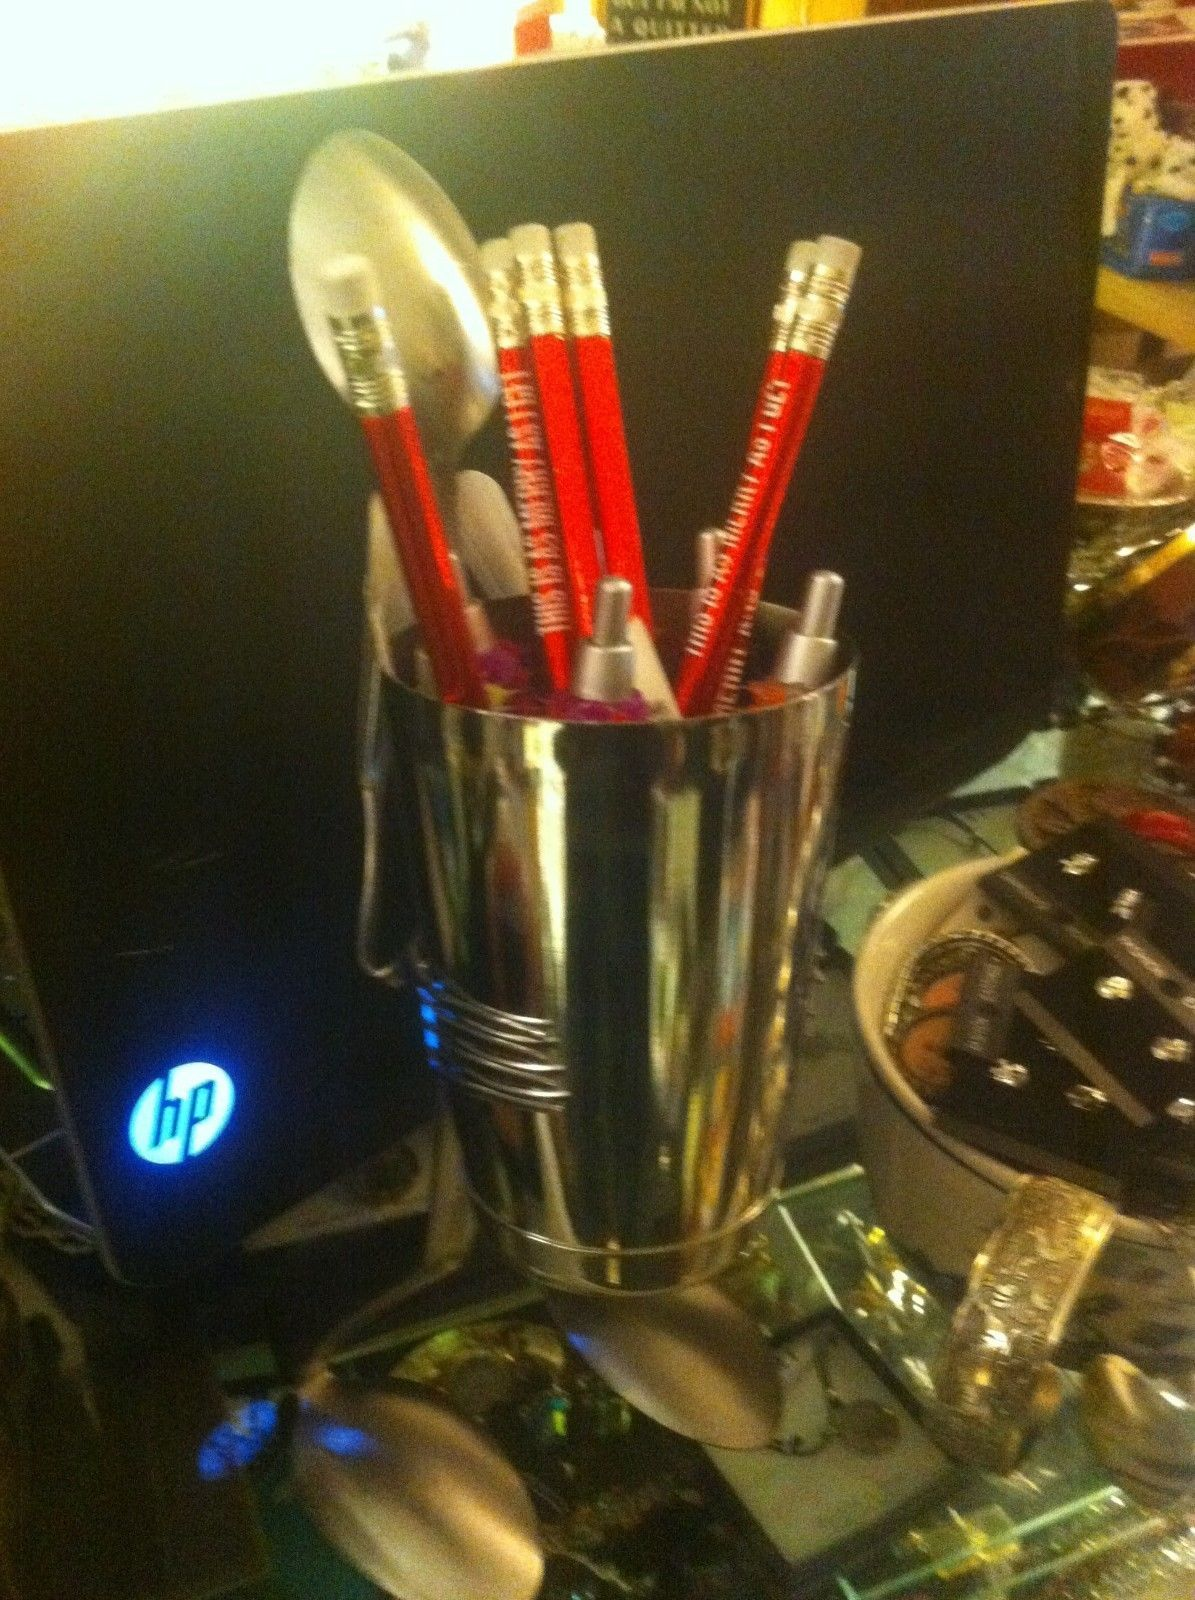 Forked Up Art pencil or pen cup holder spoon man USA made 4 person w everything